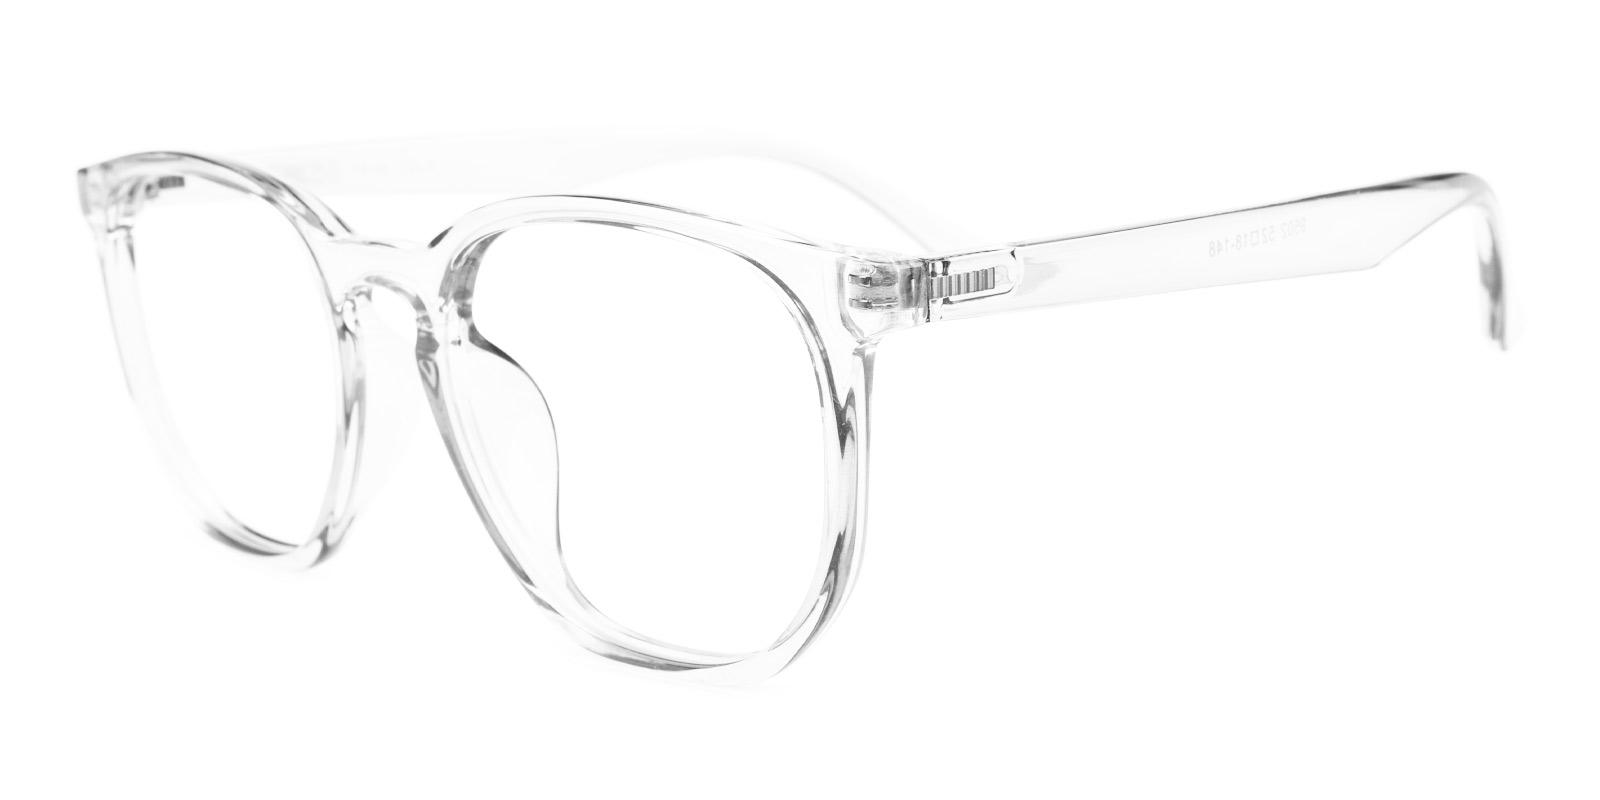 Claire-Translucent-Geometric-TR-Eyeglasses-additional1